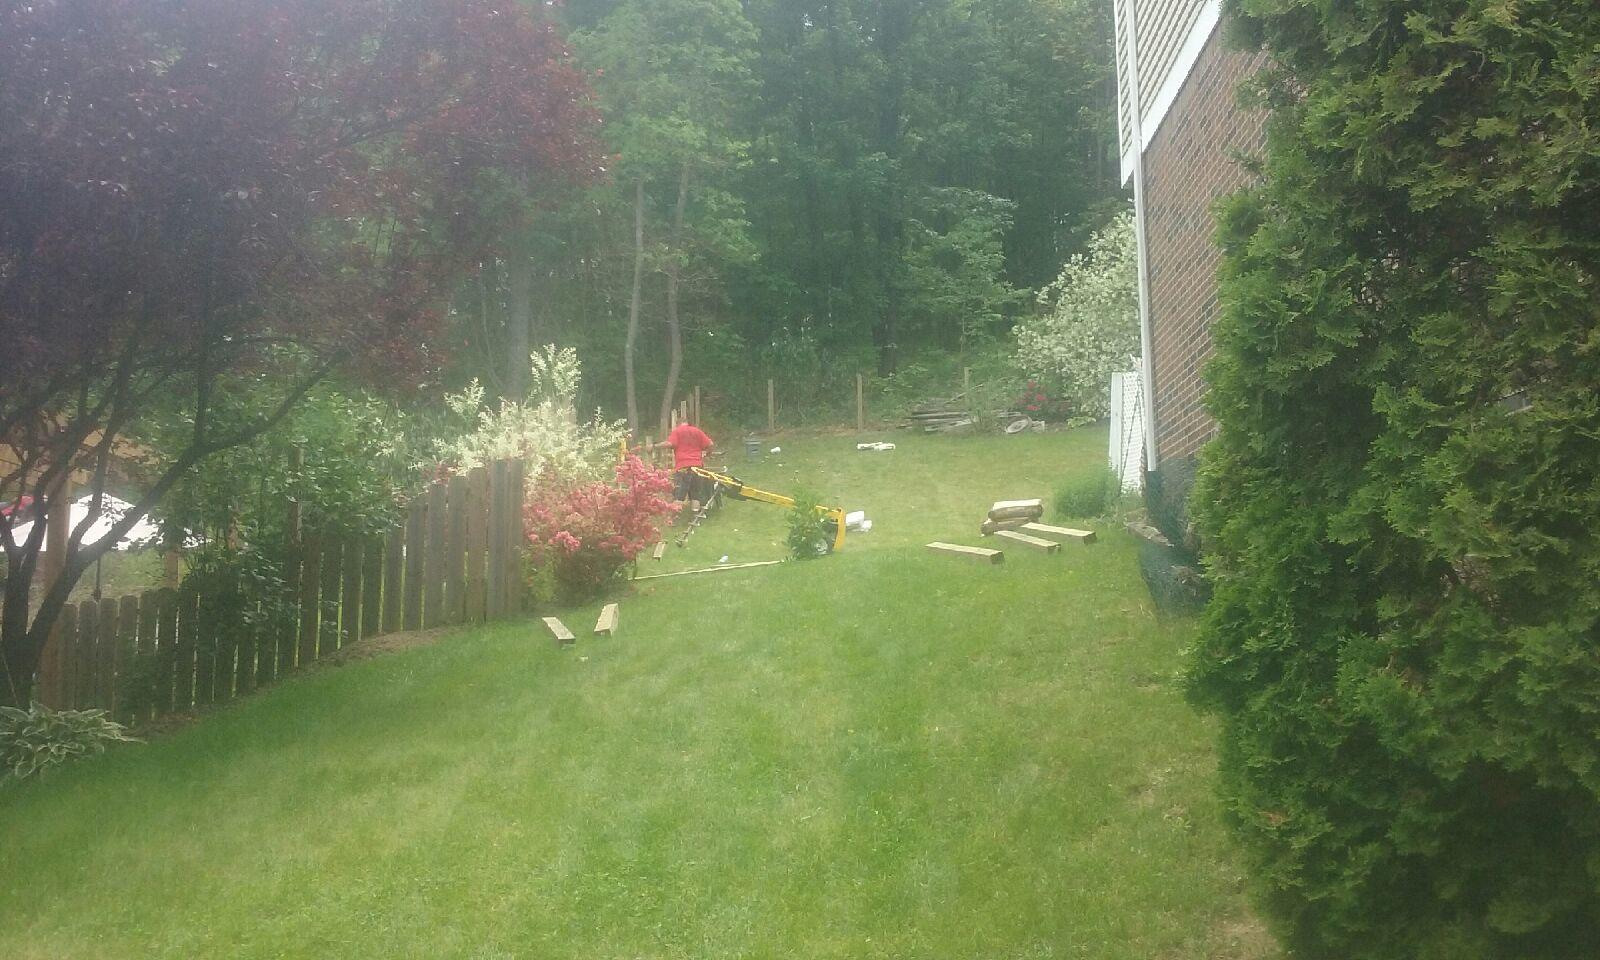 4' Treated Wood Privacy Fence Installation in Monroeville, PA - Before Photo